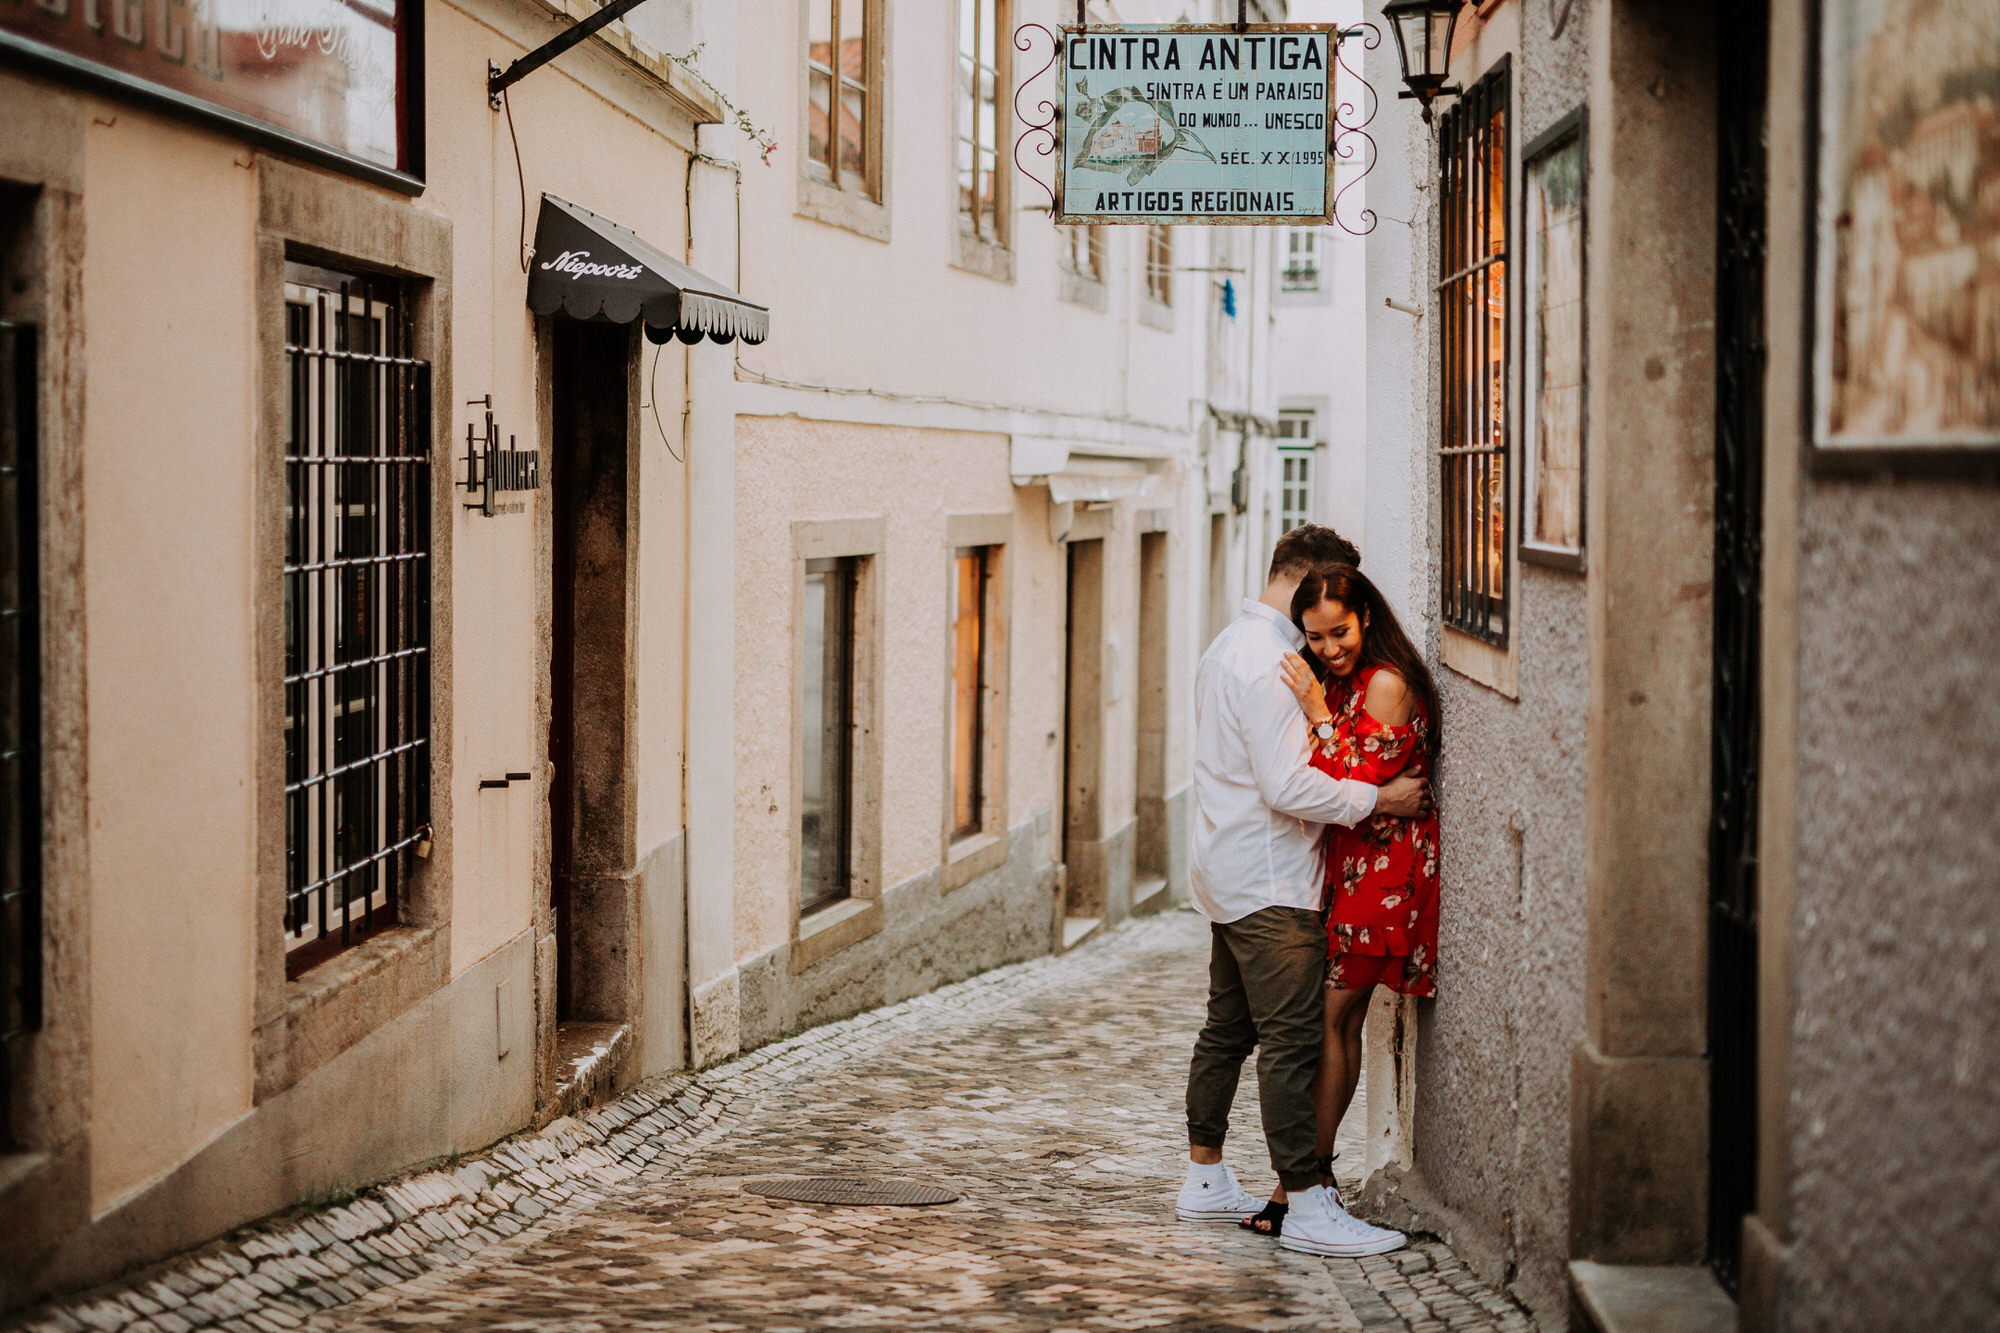 44-sessao-noivado-engagement-love-session-Sintra-lisboa-town-wedding-photography-photographer-natural-best-venue-planner-destination-filipe-santiago-fotografia-lifestyle-documentary